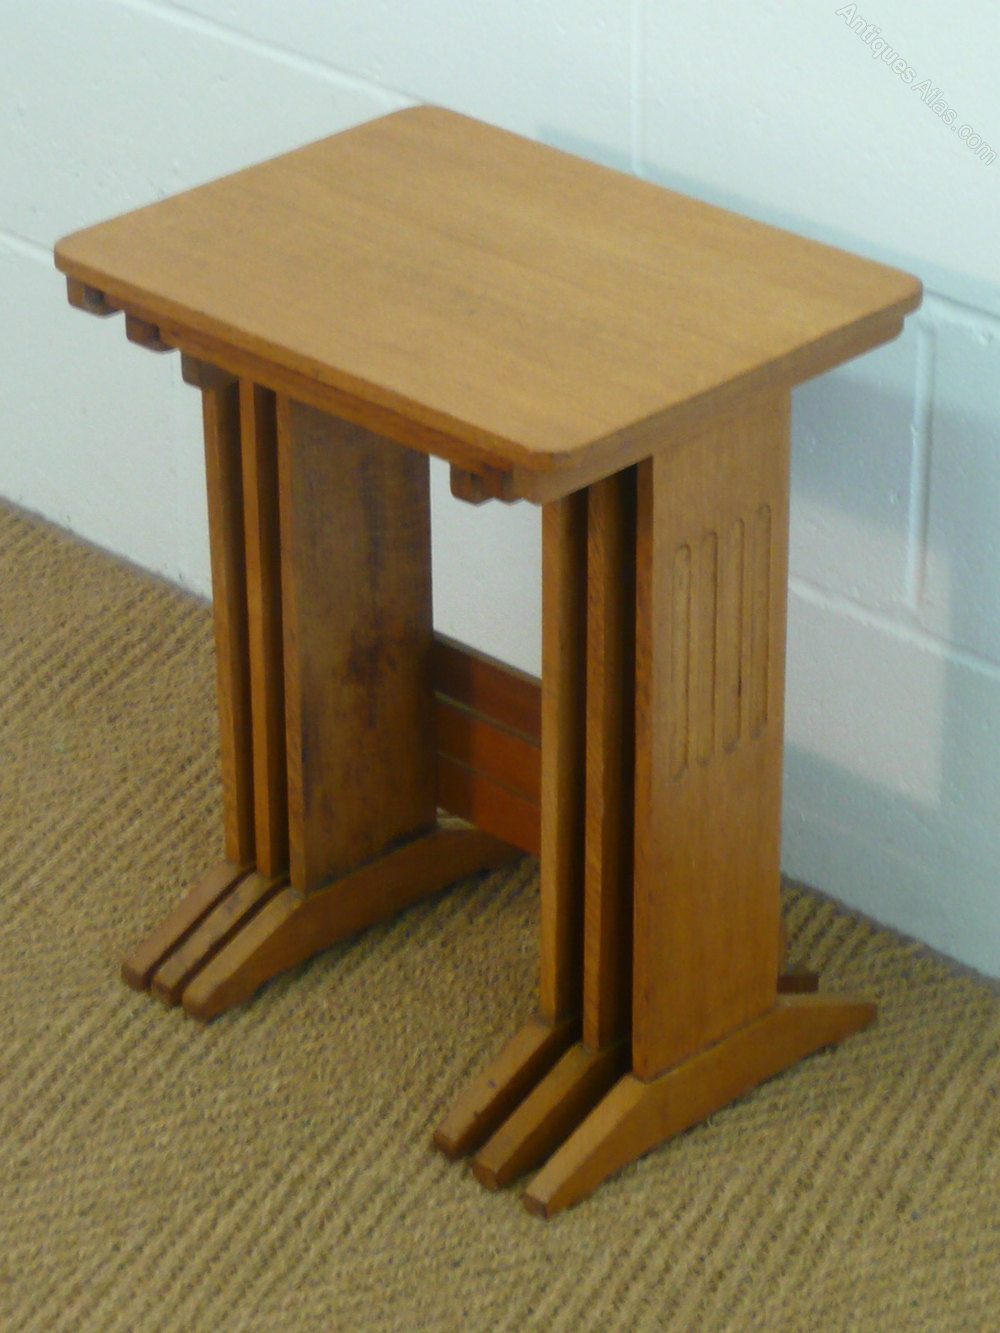 dating oak tables Antique tables for sale from dining tables, to kitchen, farmhouse, side or occasional tables from antiques world in victorian oak, mahogany & pine.